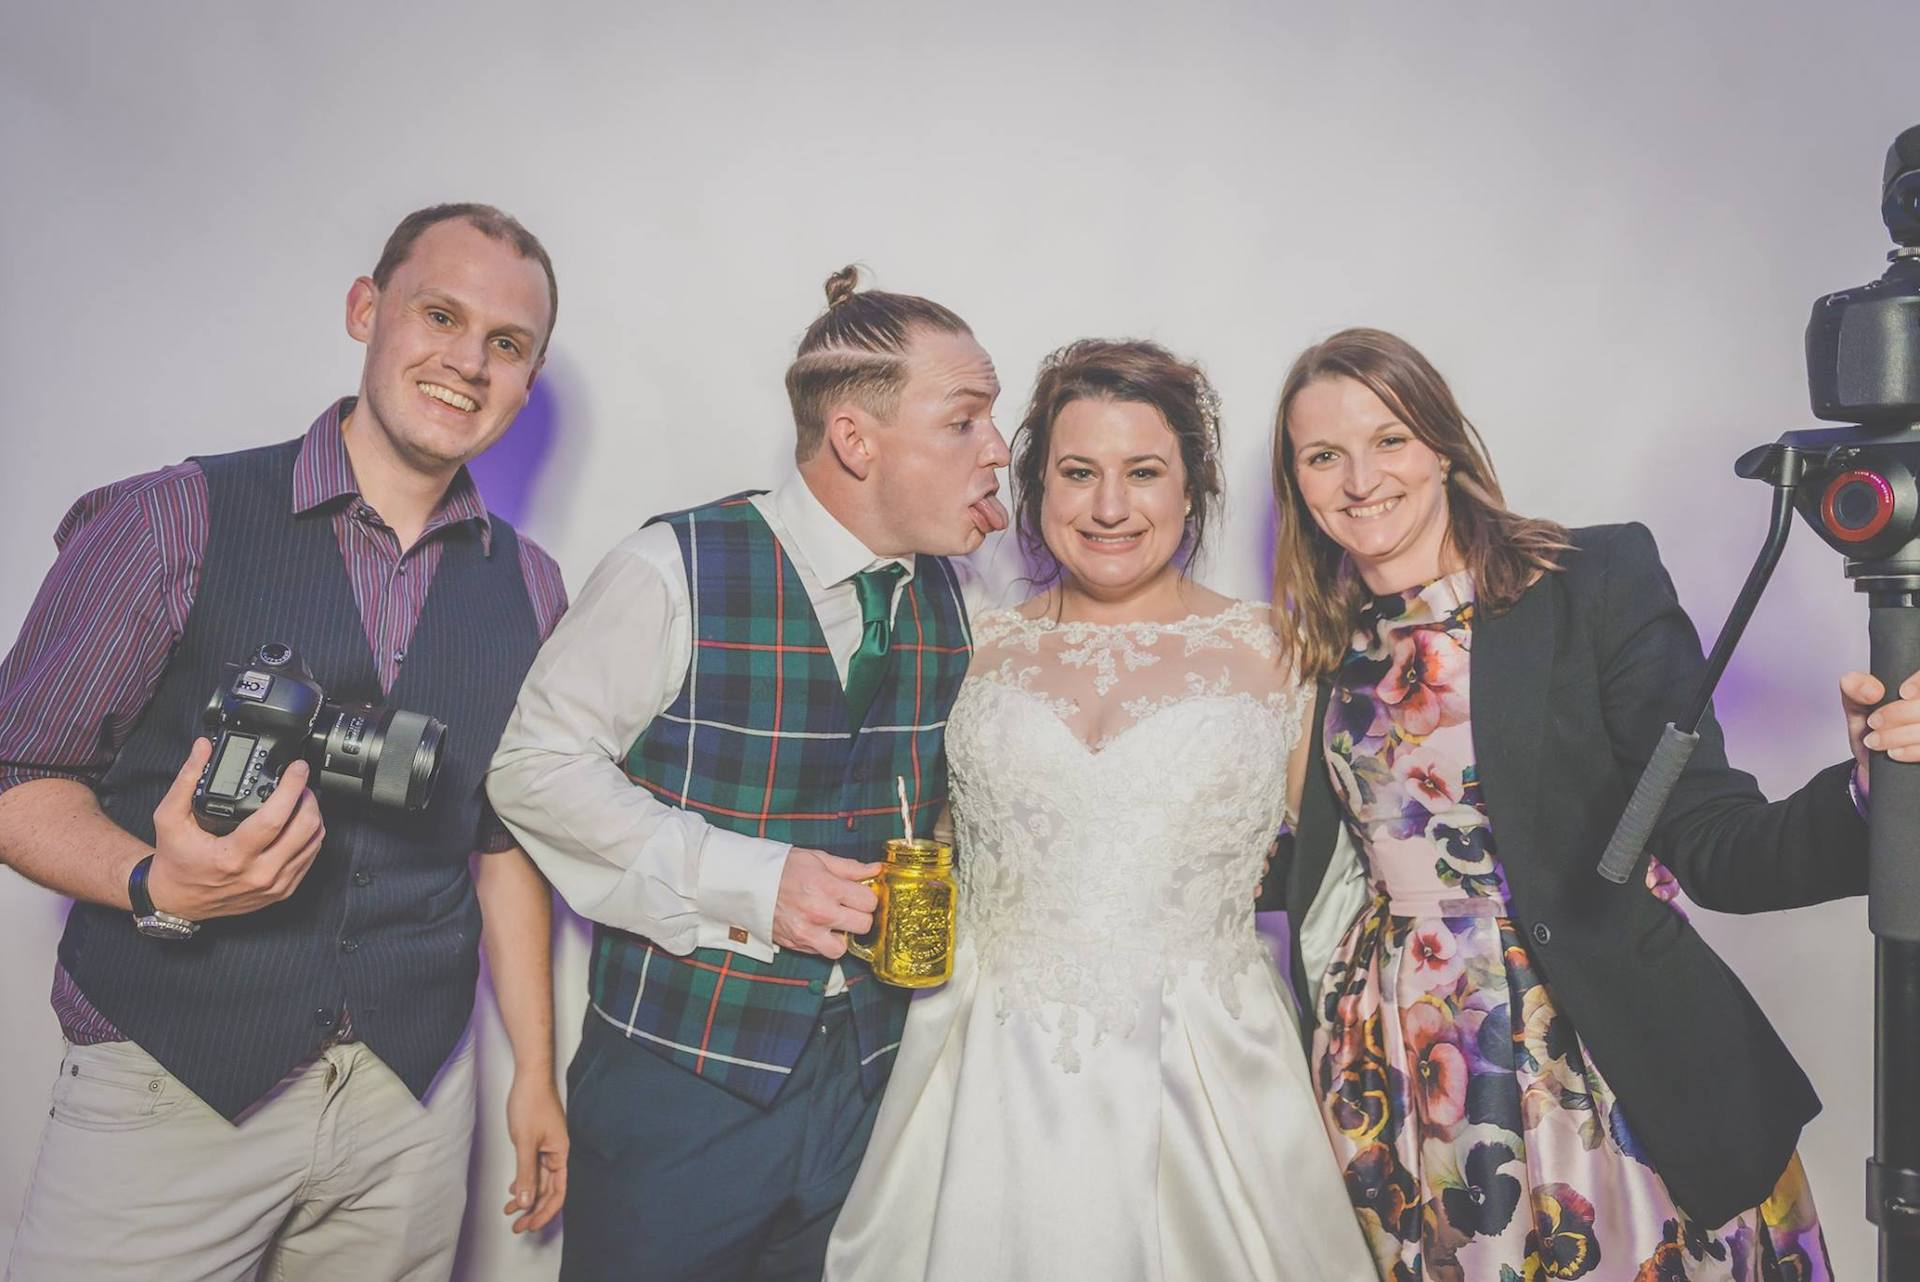 Rach and Pete of Veiled Productions with Soph and Stu - Photo courtesy of Monty Steedman Wedding Photography